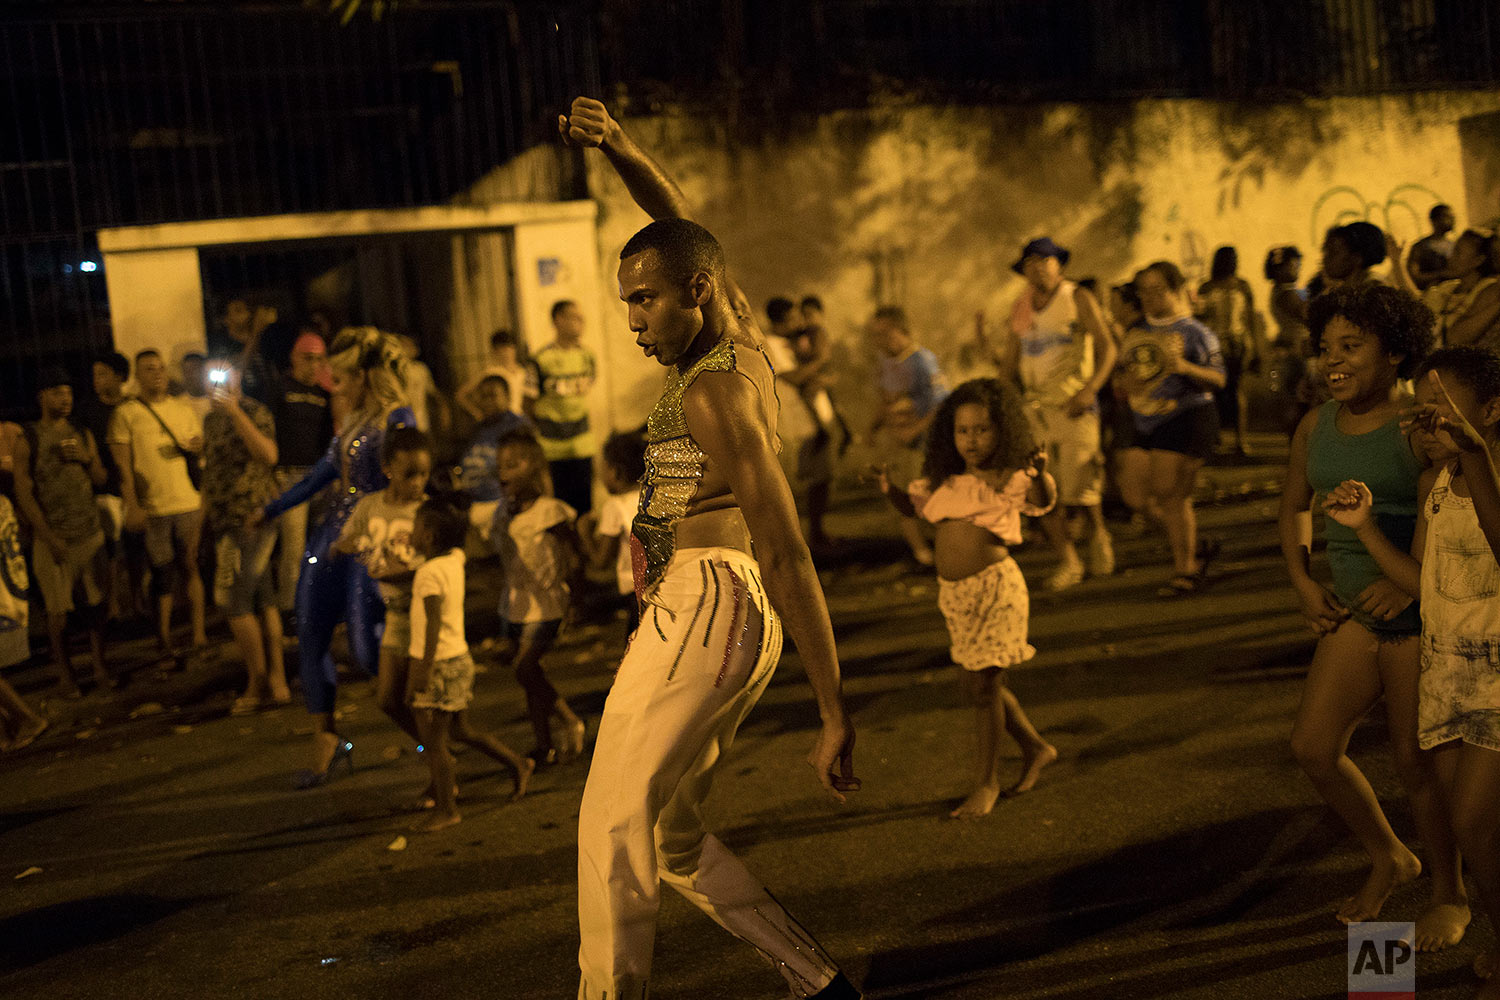 """In this Jan. 22, 2018 photo, a member of the Paraiso do Tuiuti samba school rehearses his group's dances and songs, which this year make reference to Brazil's history with slavery, as residents follow in Rio de Janeiro, Brazil. """"My god, my god, has slavery been extinguished?"""" go the lyrics in Portuguese. (AP Photo/Leo Correa)"""